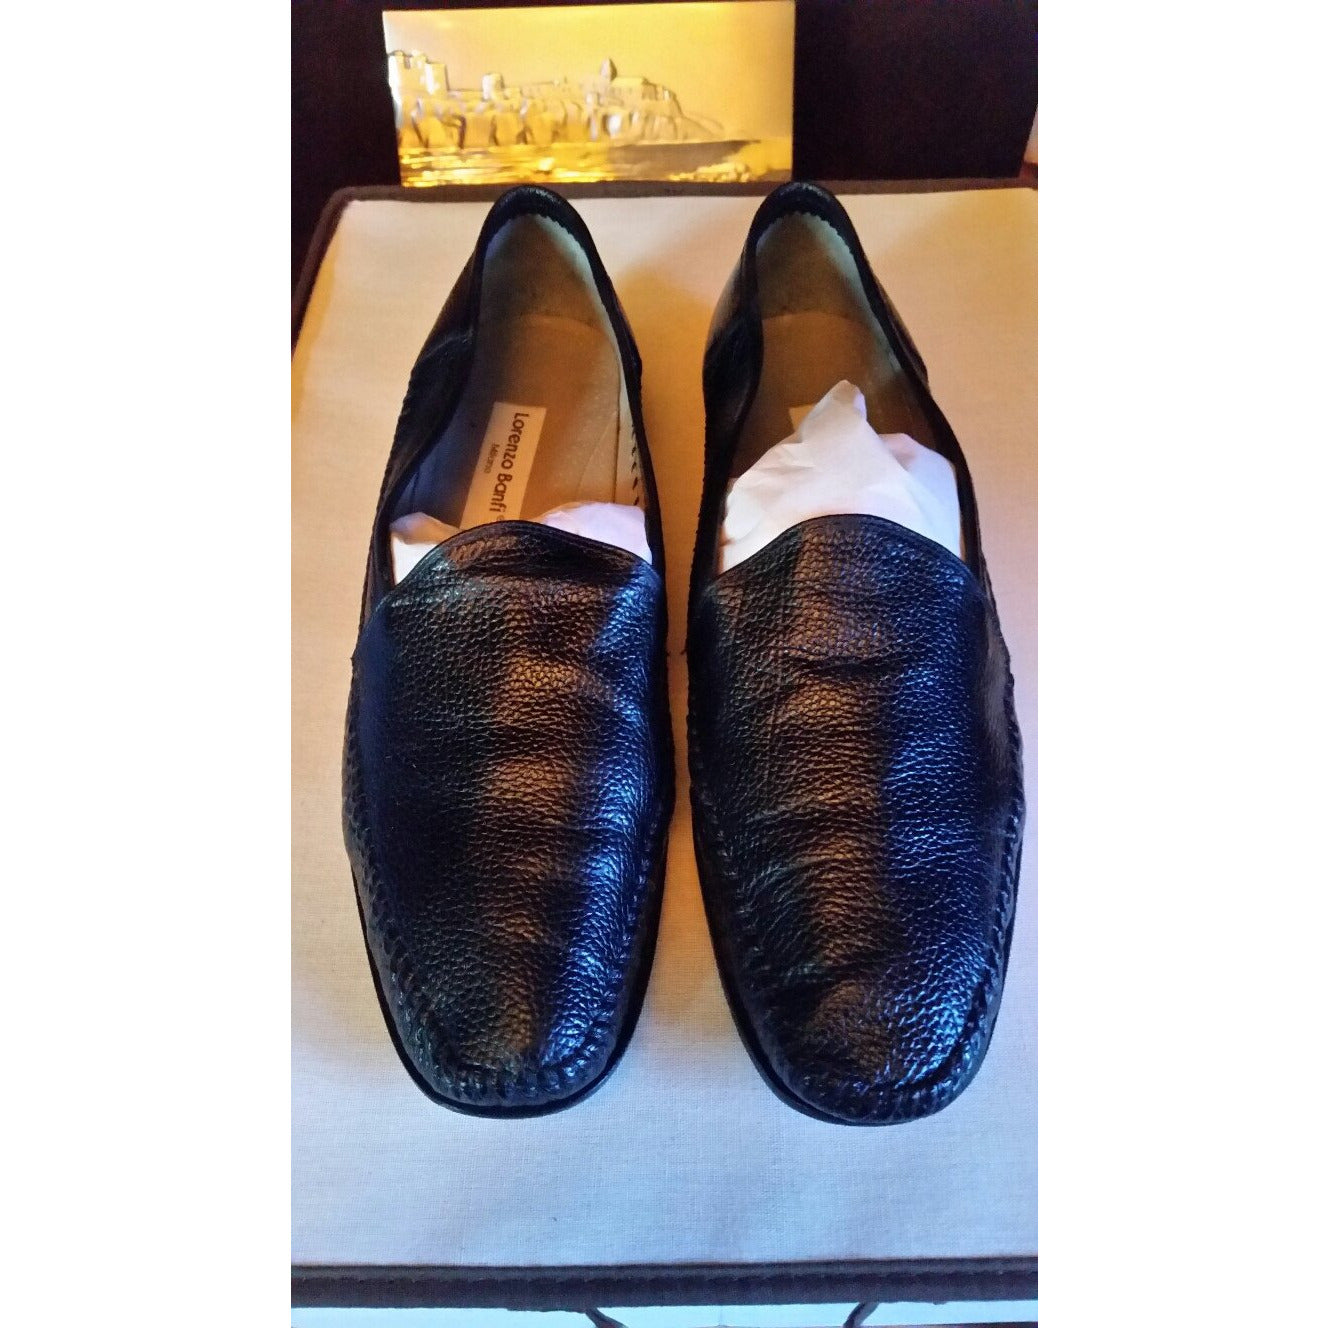 Lorenzo Banfi Size 12 M Black Shoes Preowned Good Condition